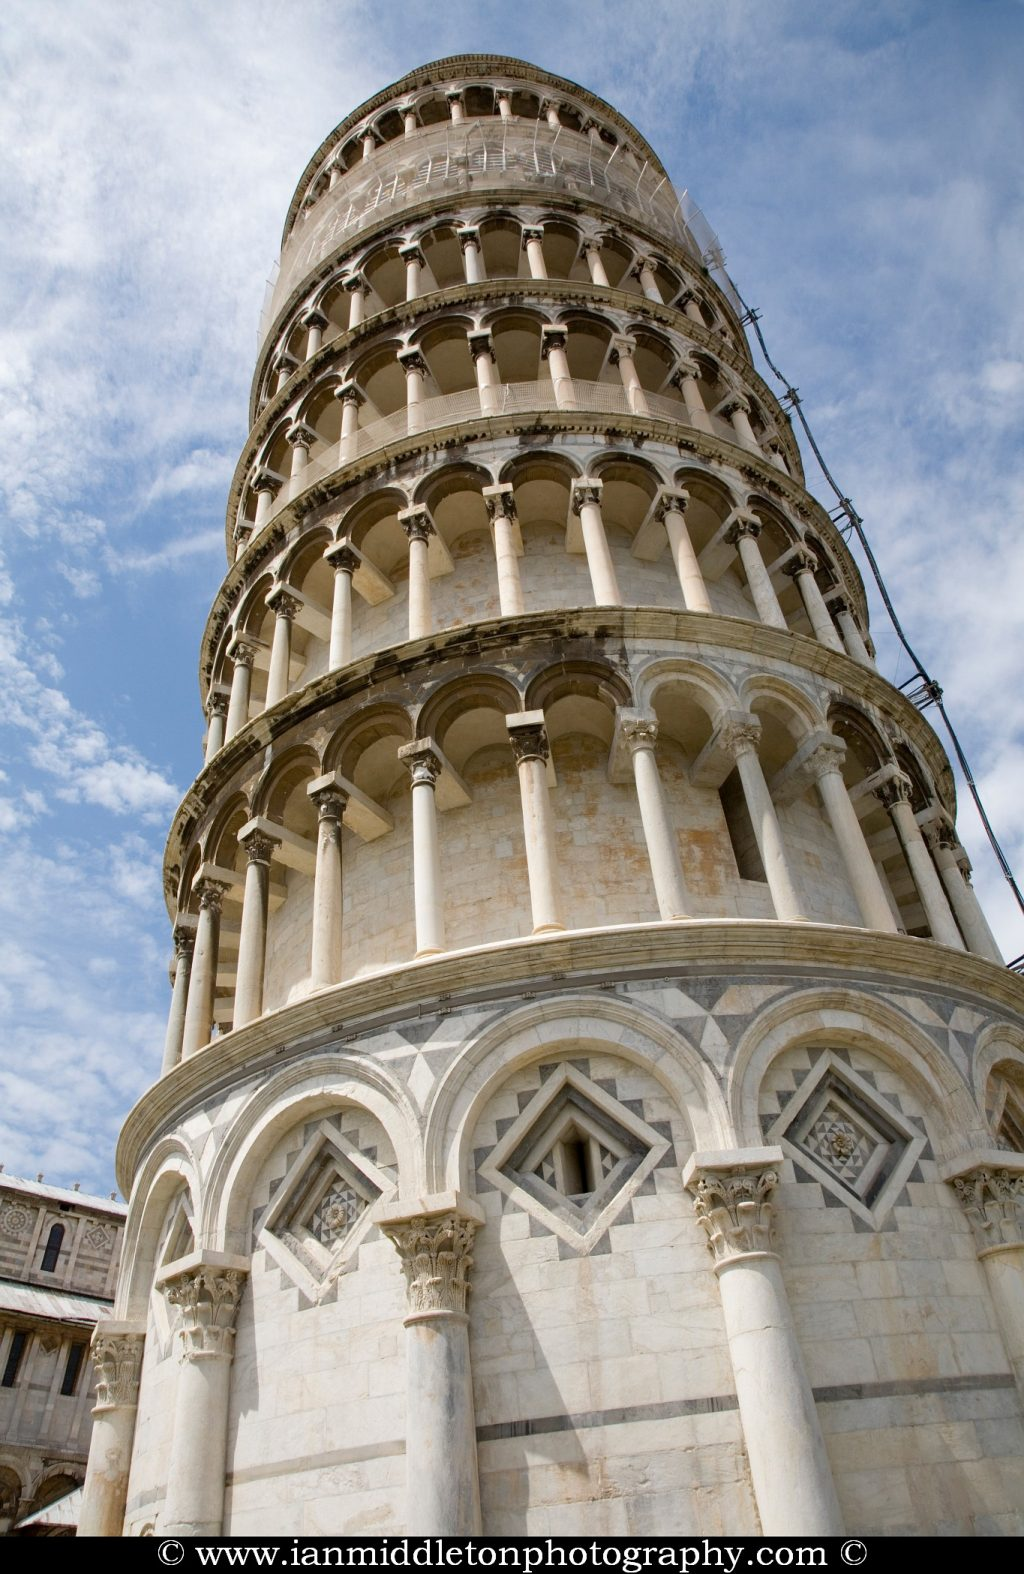 Leaning tower in Campo di Miracoli (field of Miracles), Pisa, Tuscany, Italy